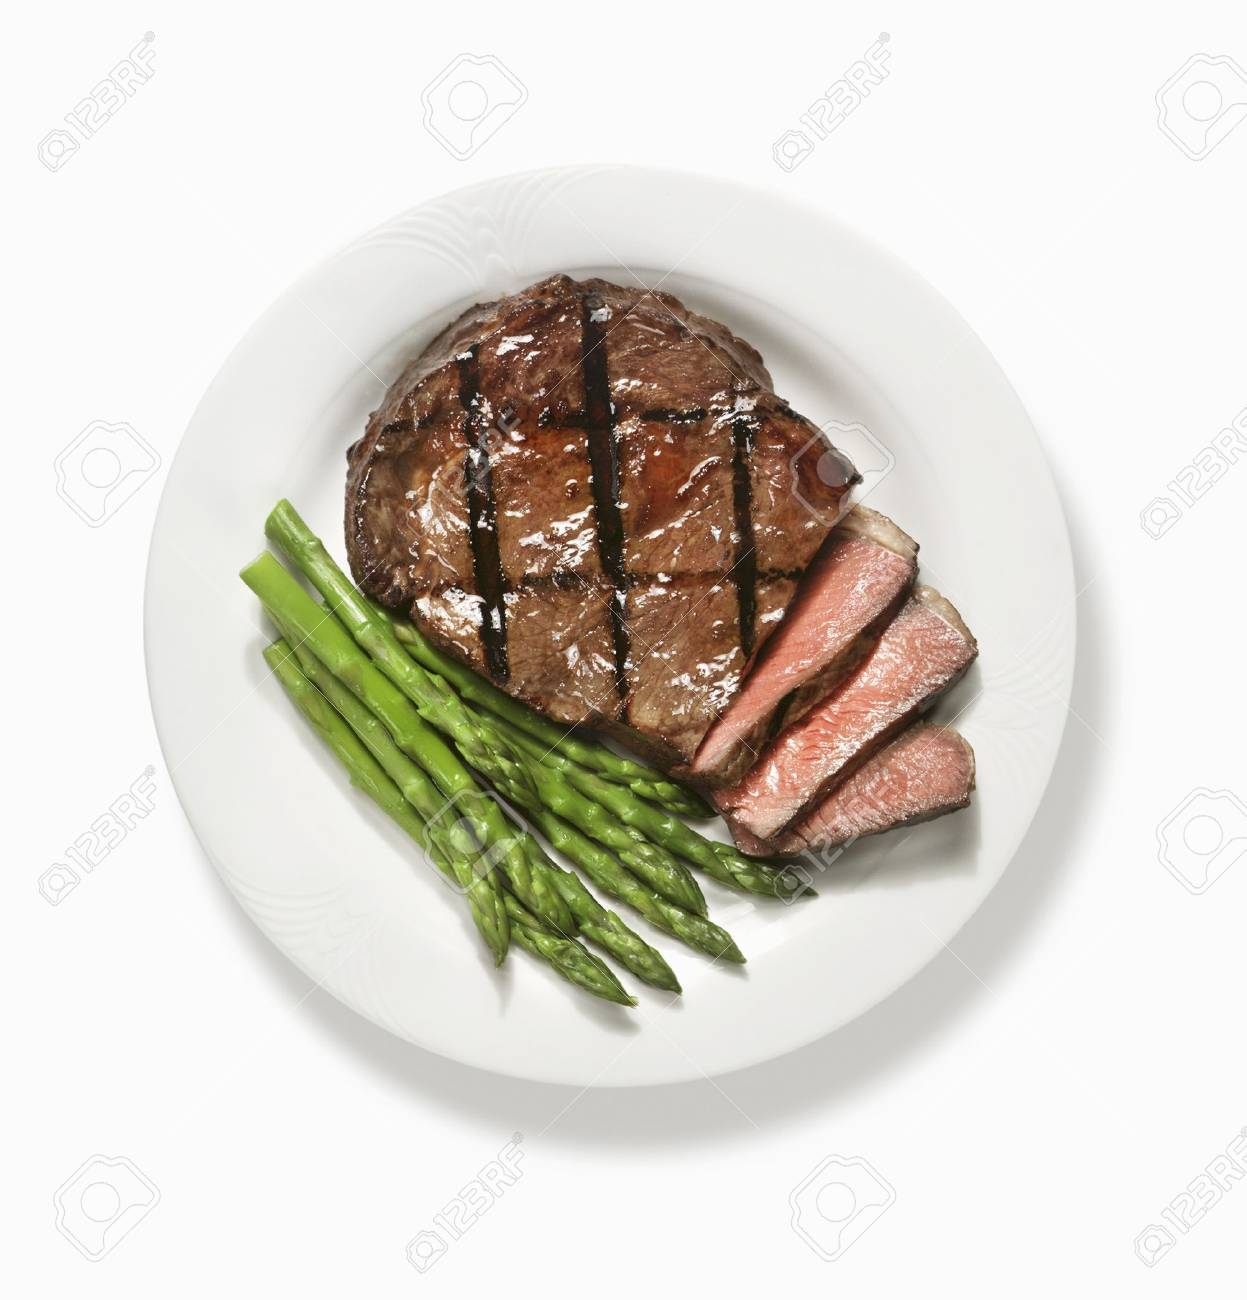 Partially Sliced Grilled Steak With Asparagus From Above Stock Photo 32391539